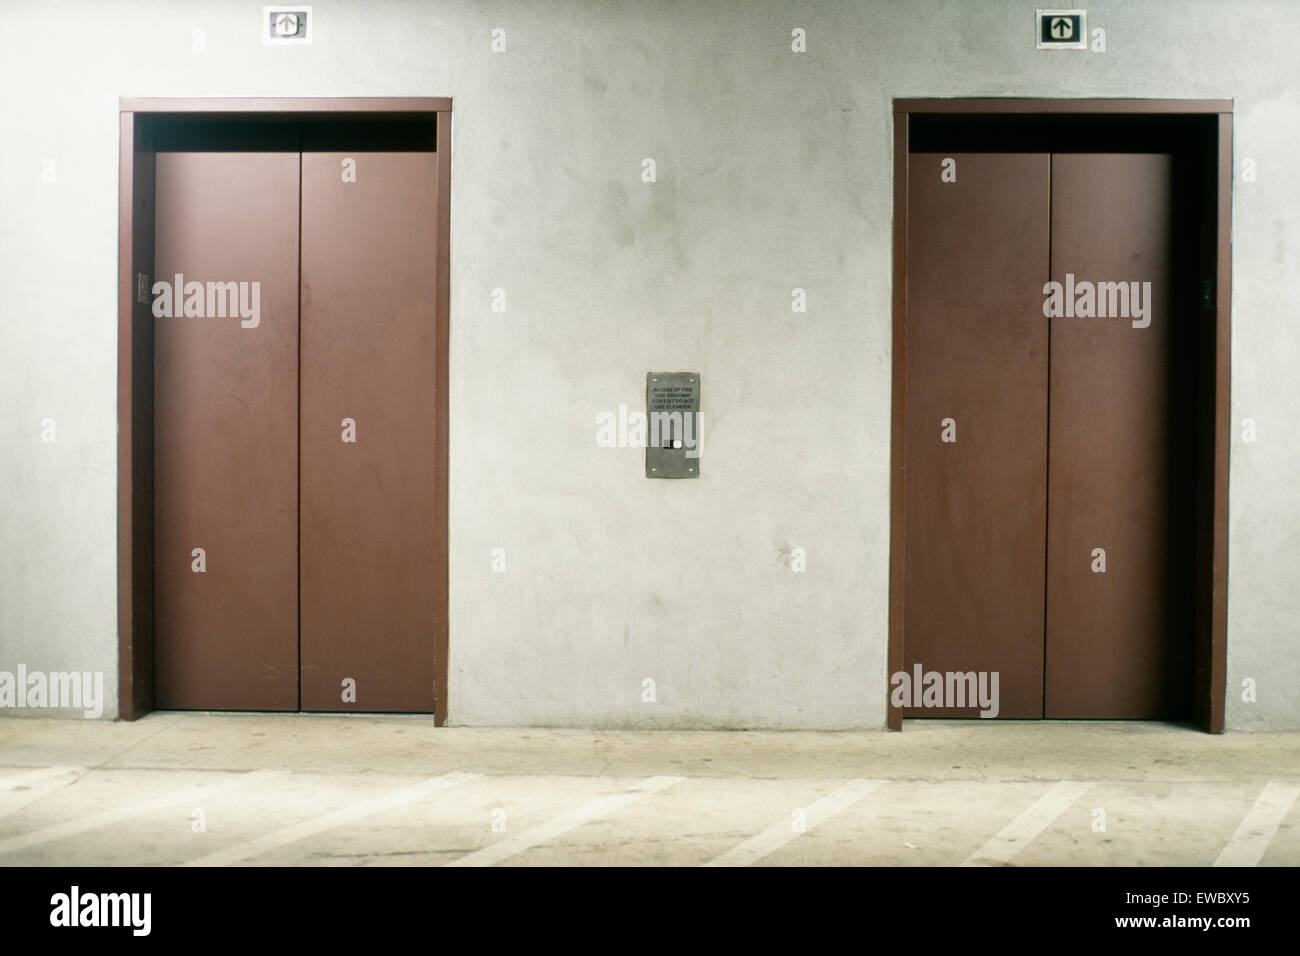 front view of two elevator doors in a underground parking garage Parking Garage Design front view of two elevator doors in a underground parking garage california